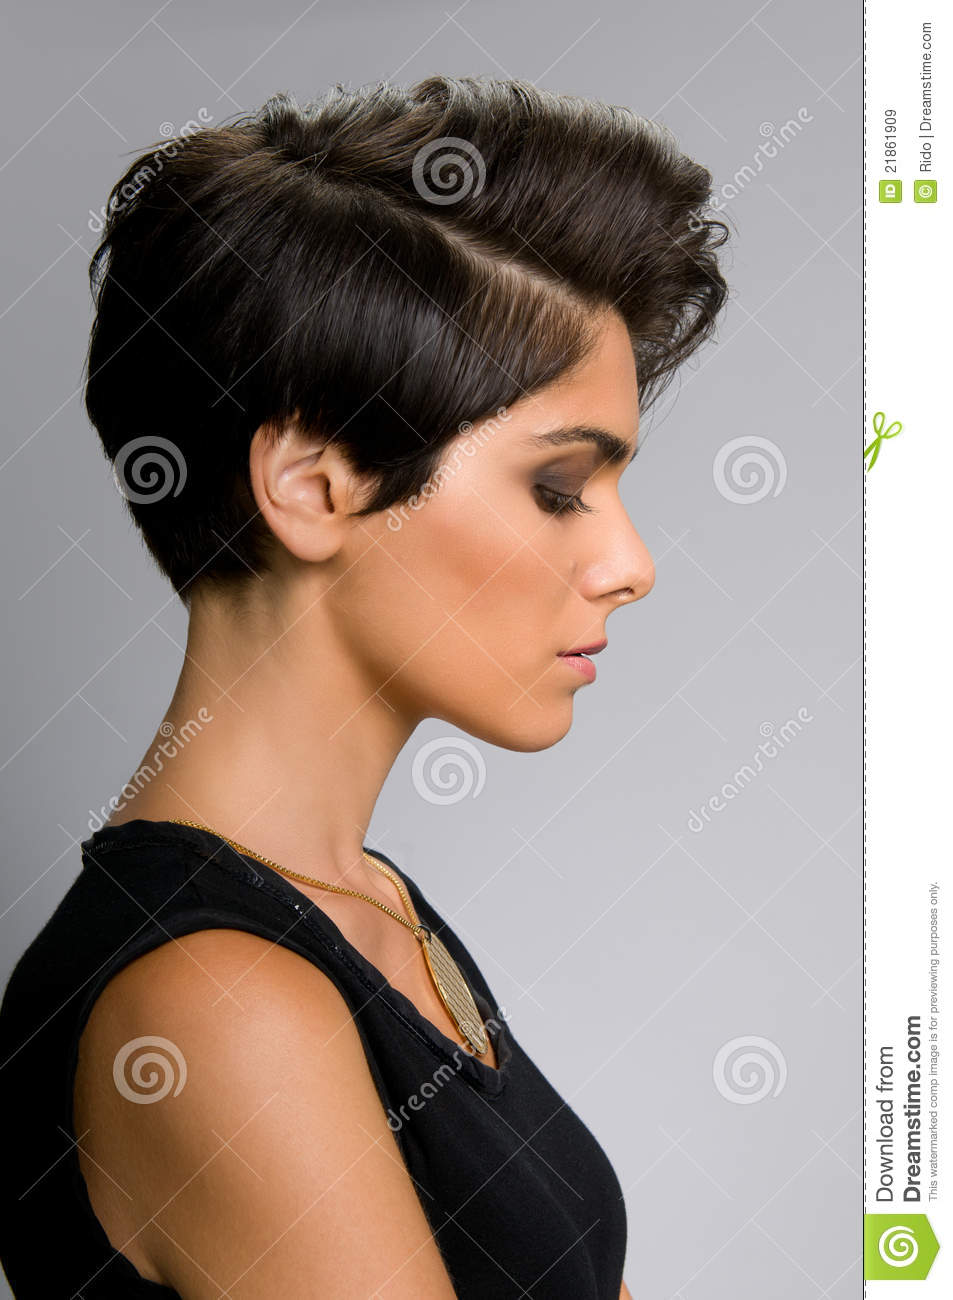 Hairstyle Profile Royalty Free Stock Images Image 21861909